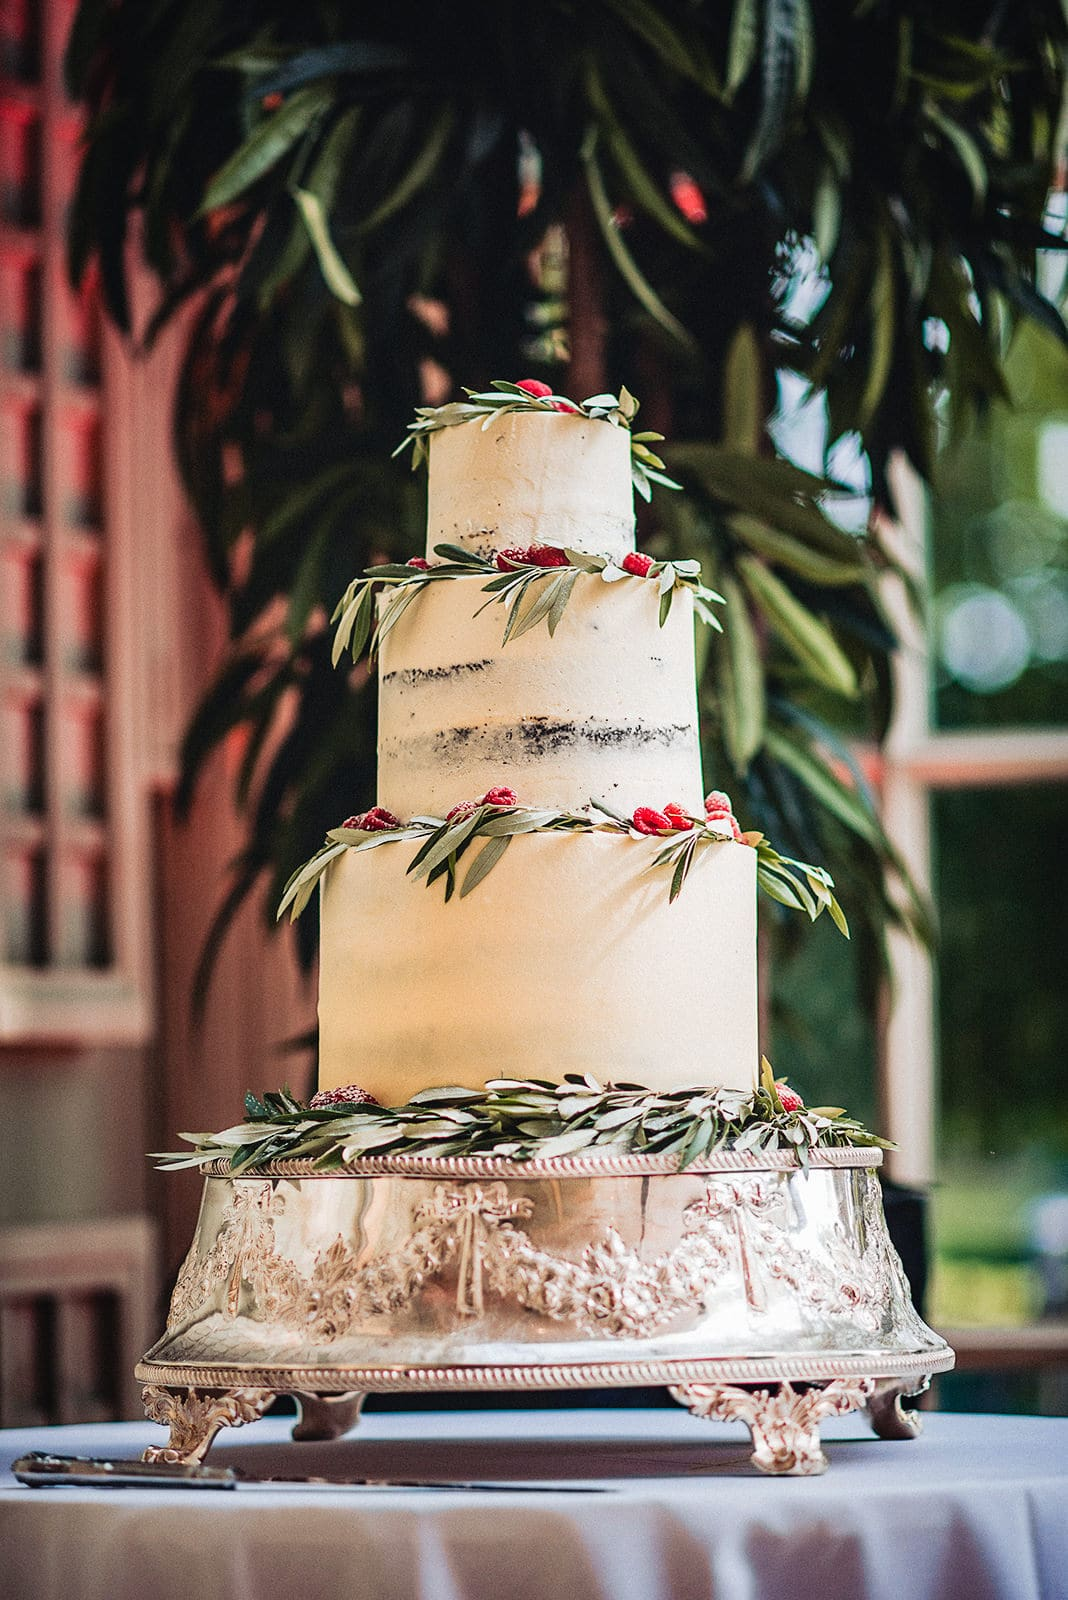 Semi-naked wedding cake with eucalyptus leaves and fresh raspberries